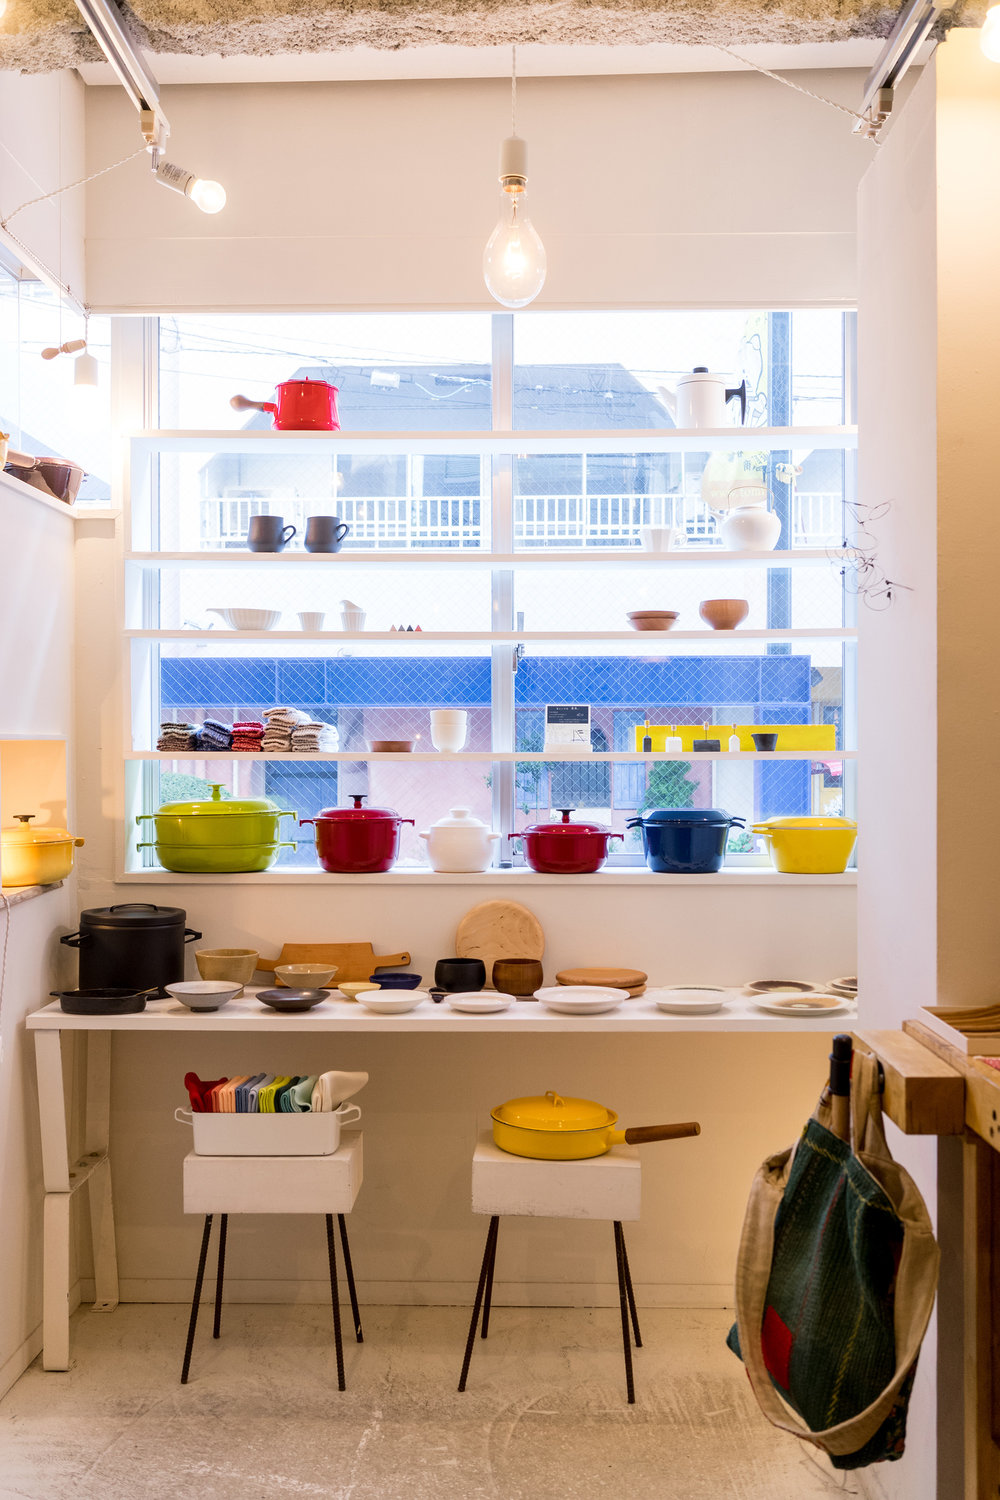 Kio Ceramics/ Homeware shop